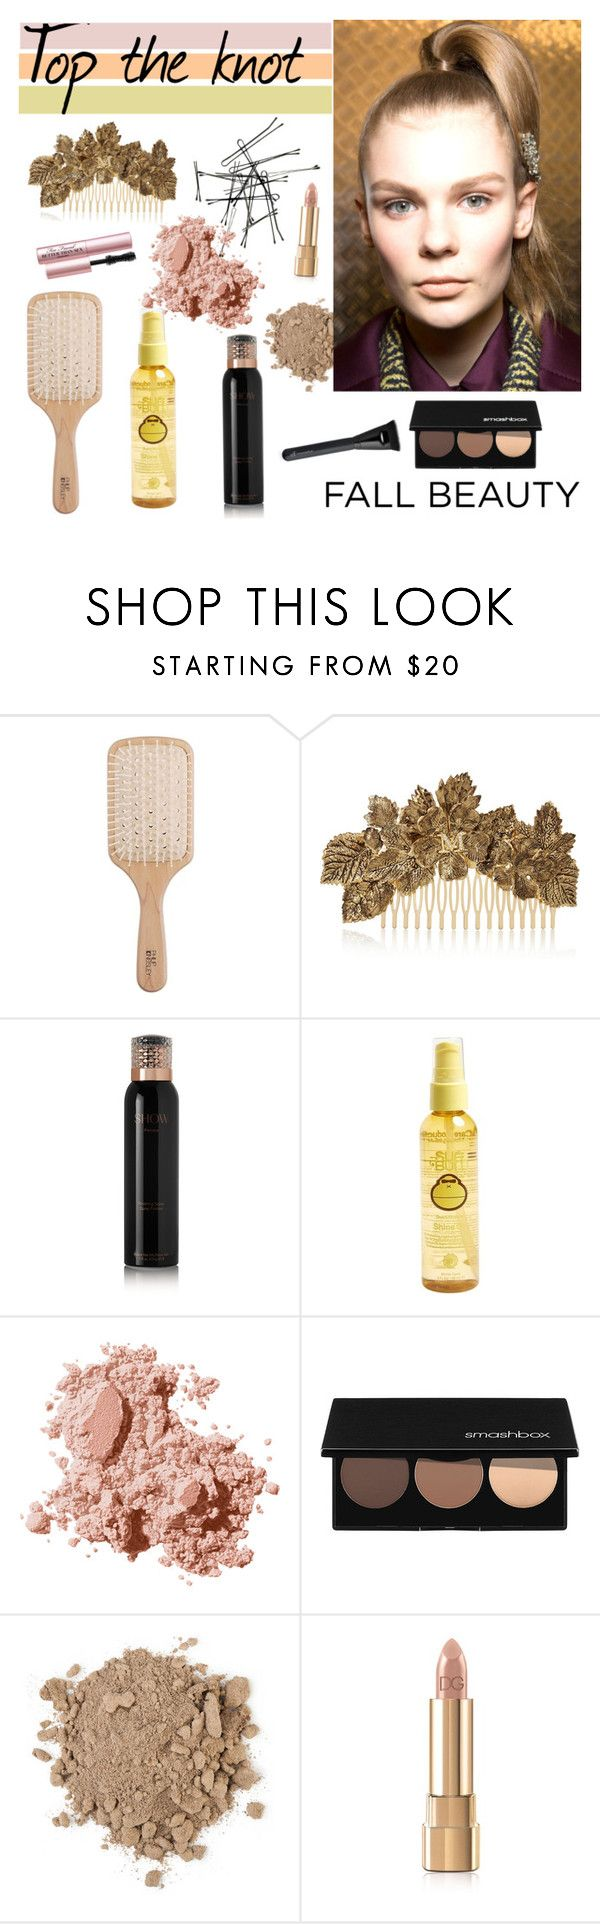 """""""Fall hair 2015"""" by tauriel25 ❤ liked on Polyvore featuring beleza, Philip Kingsley, Maison Michel, Show Beauty, Sun Bum, Bobbi Brown Cosmetics, Smashbox, Dolce&Gabbana, Too Faced Cosmetics e hairstyle"""